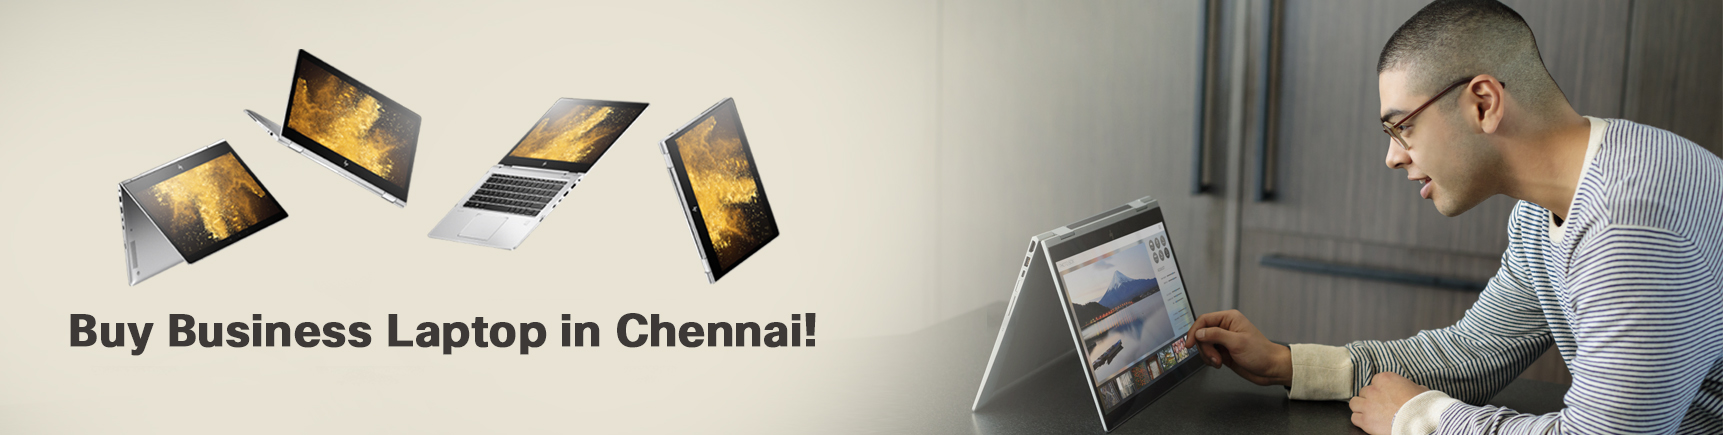 Buy Business Laptop in Chennai